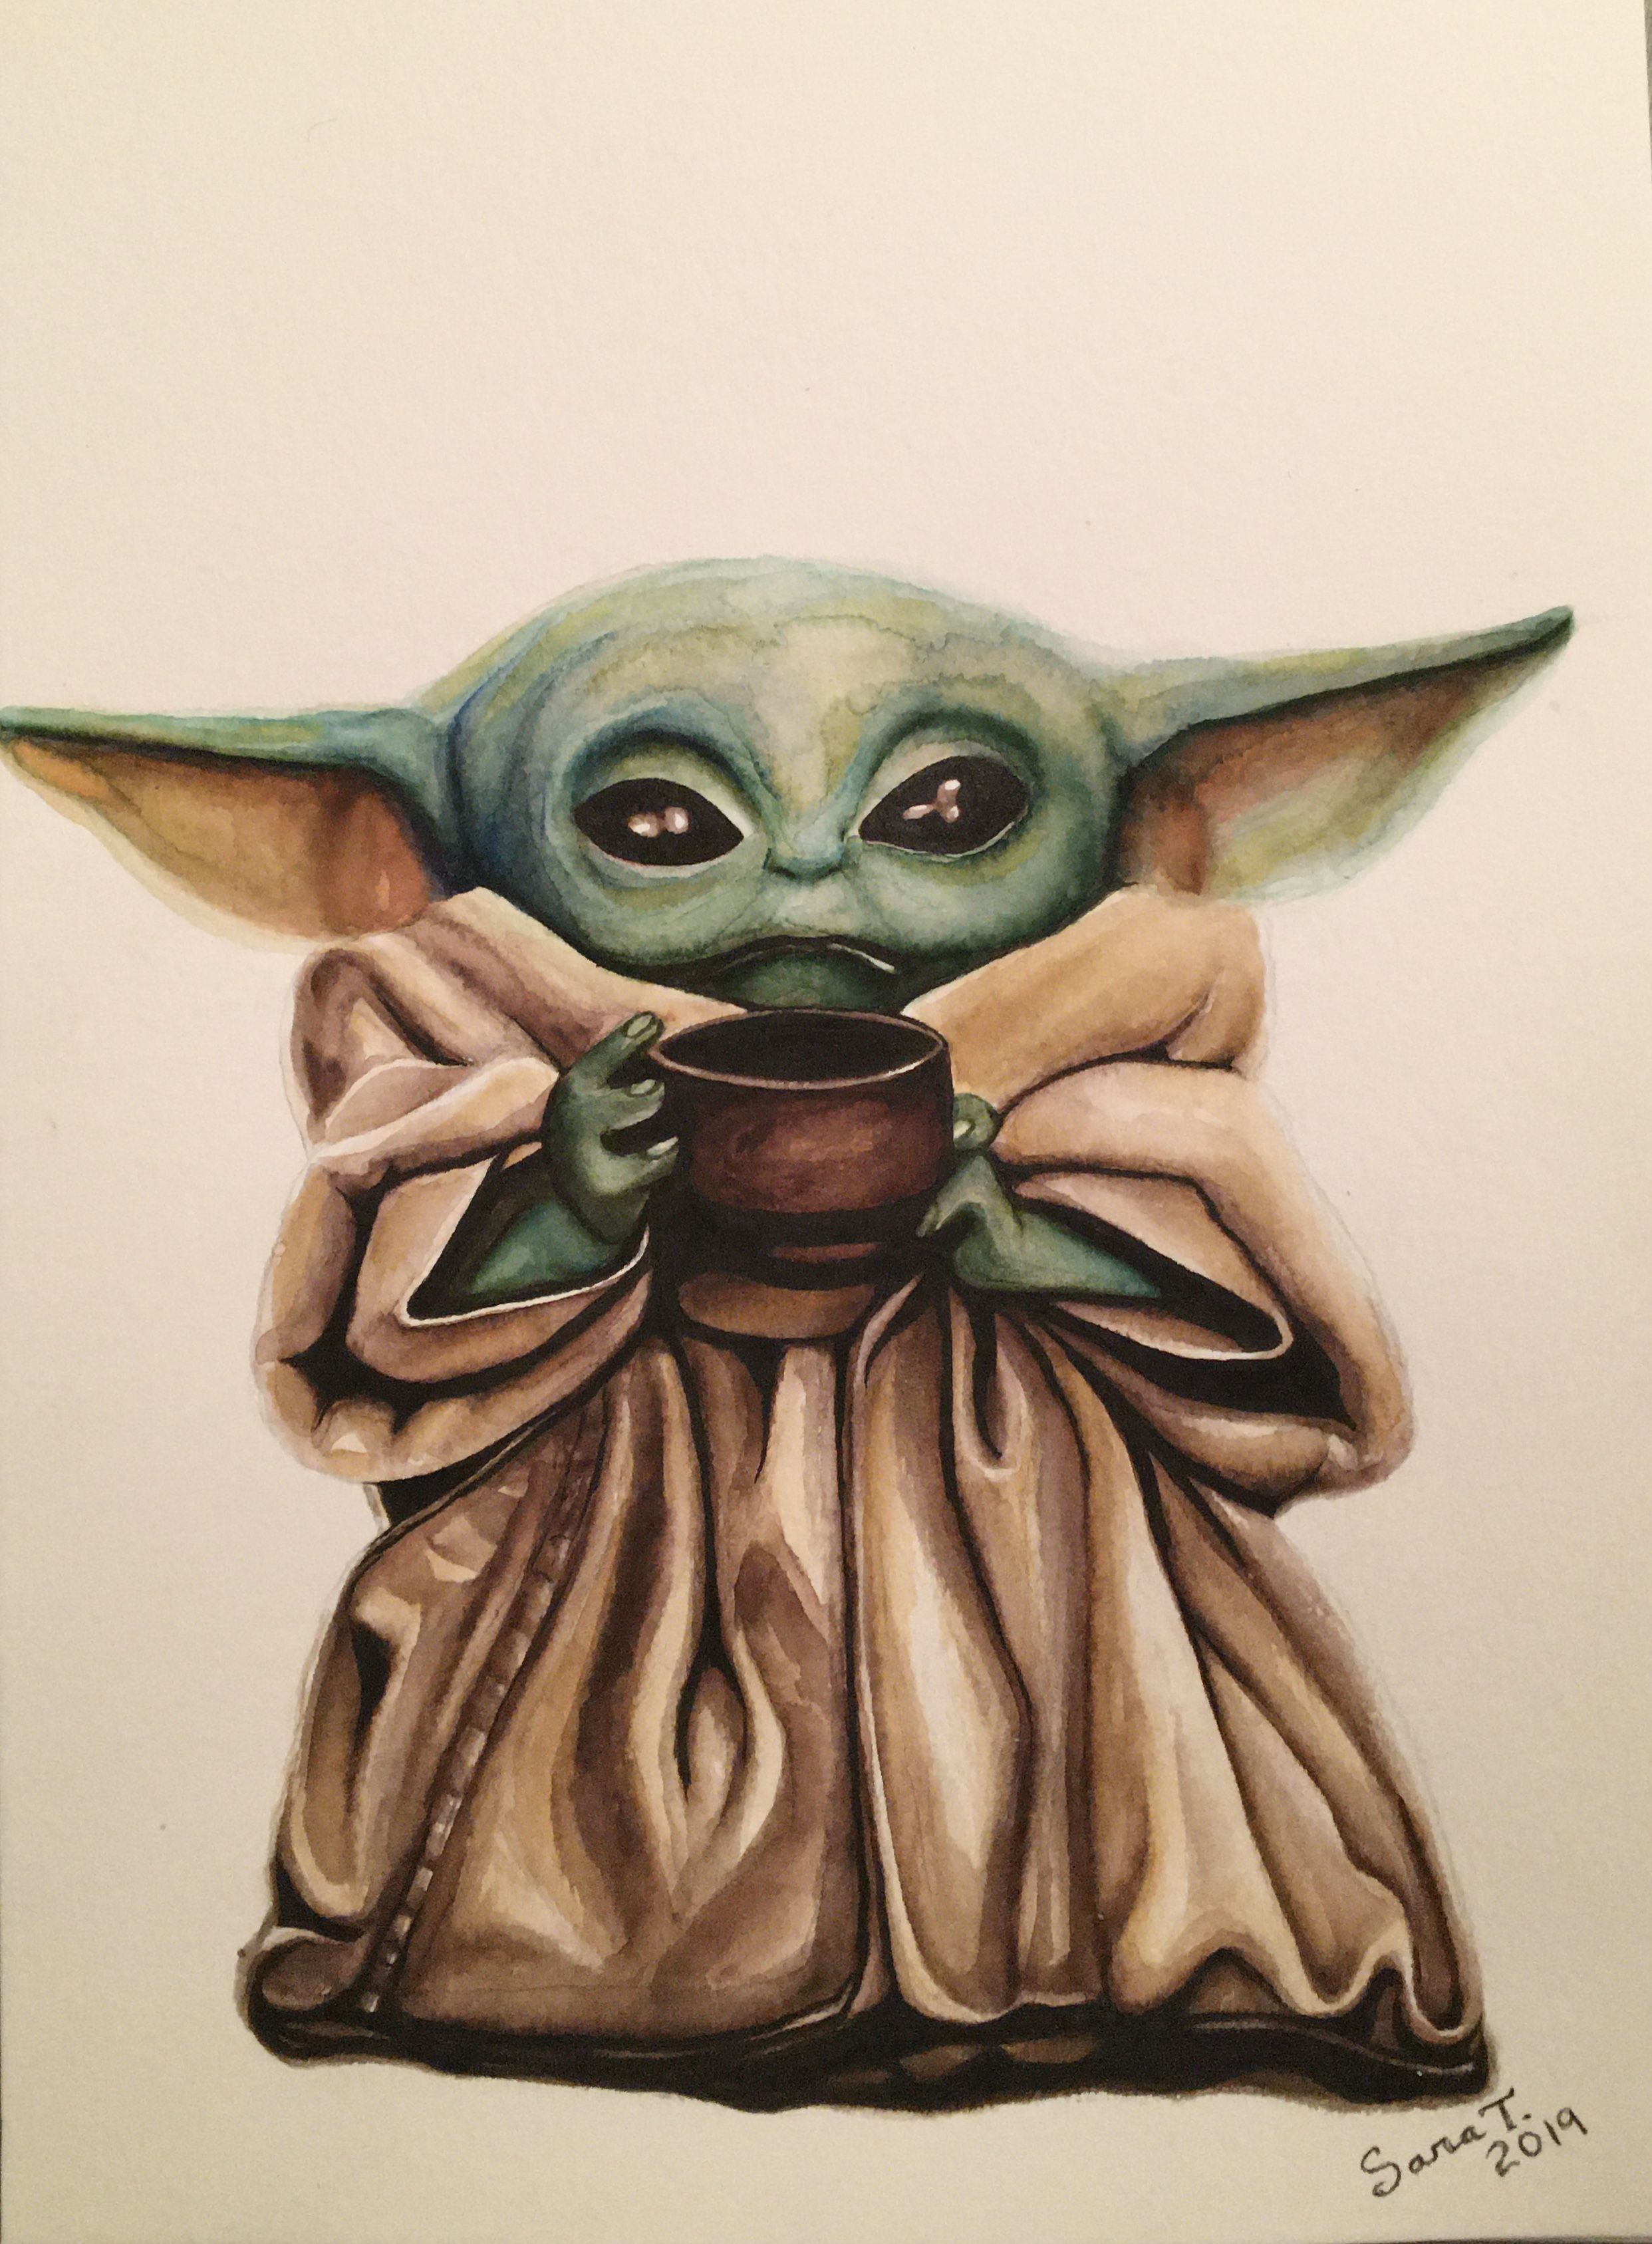 Baby Yoda Yoda Art Art Watercolor Paintings Tutorials